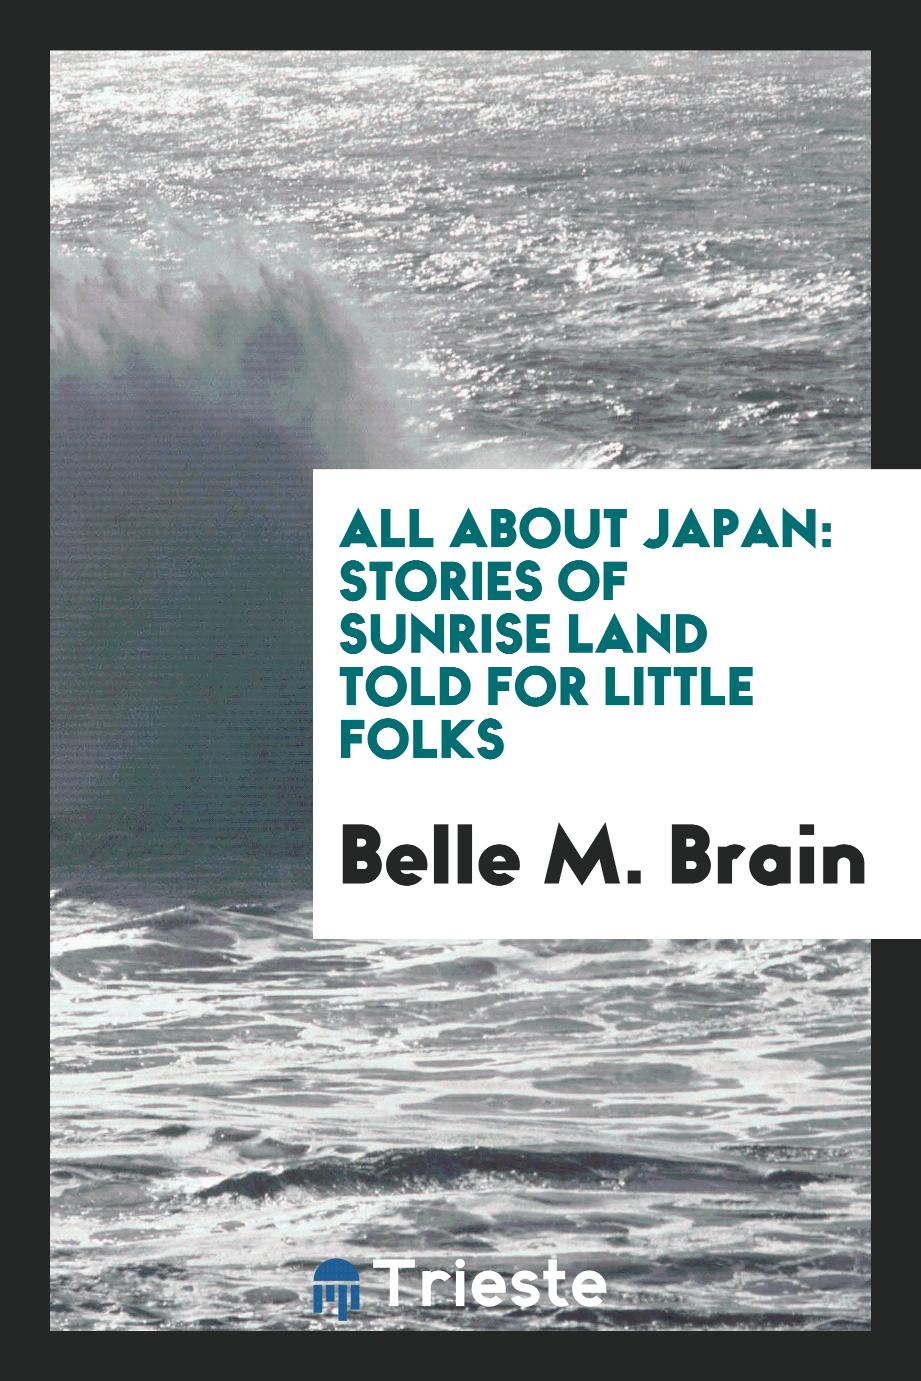 All About Japan: Stories of Sunrise Land Told for Little Folks